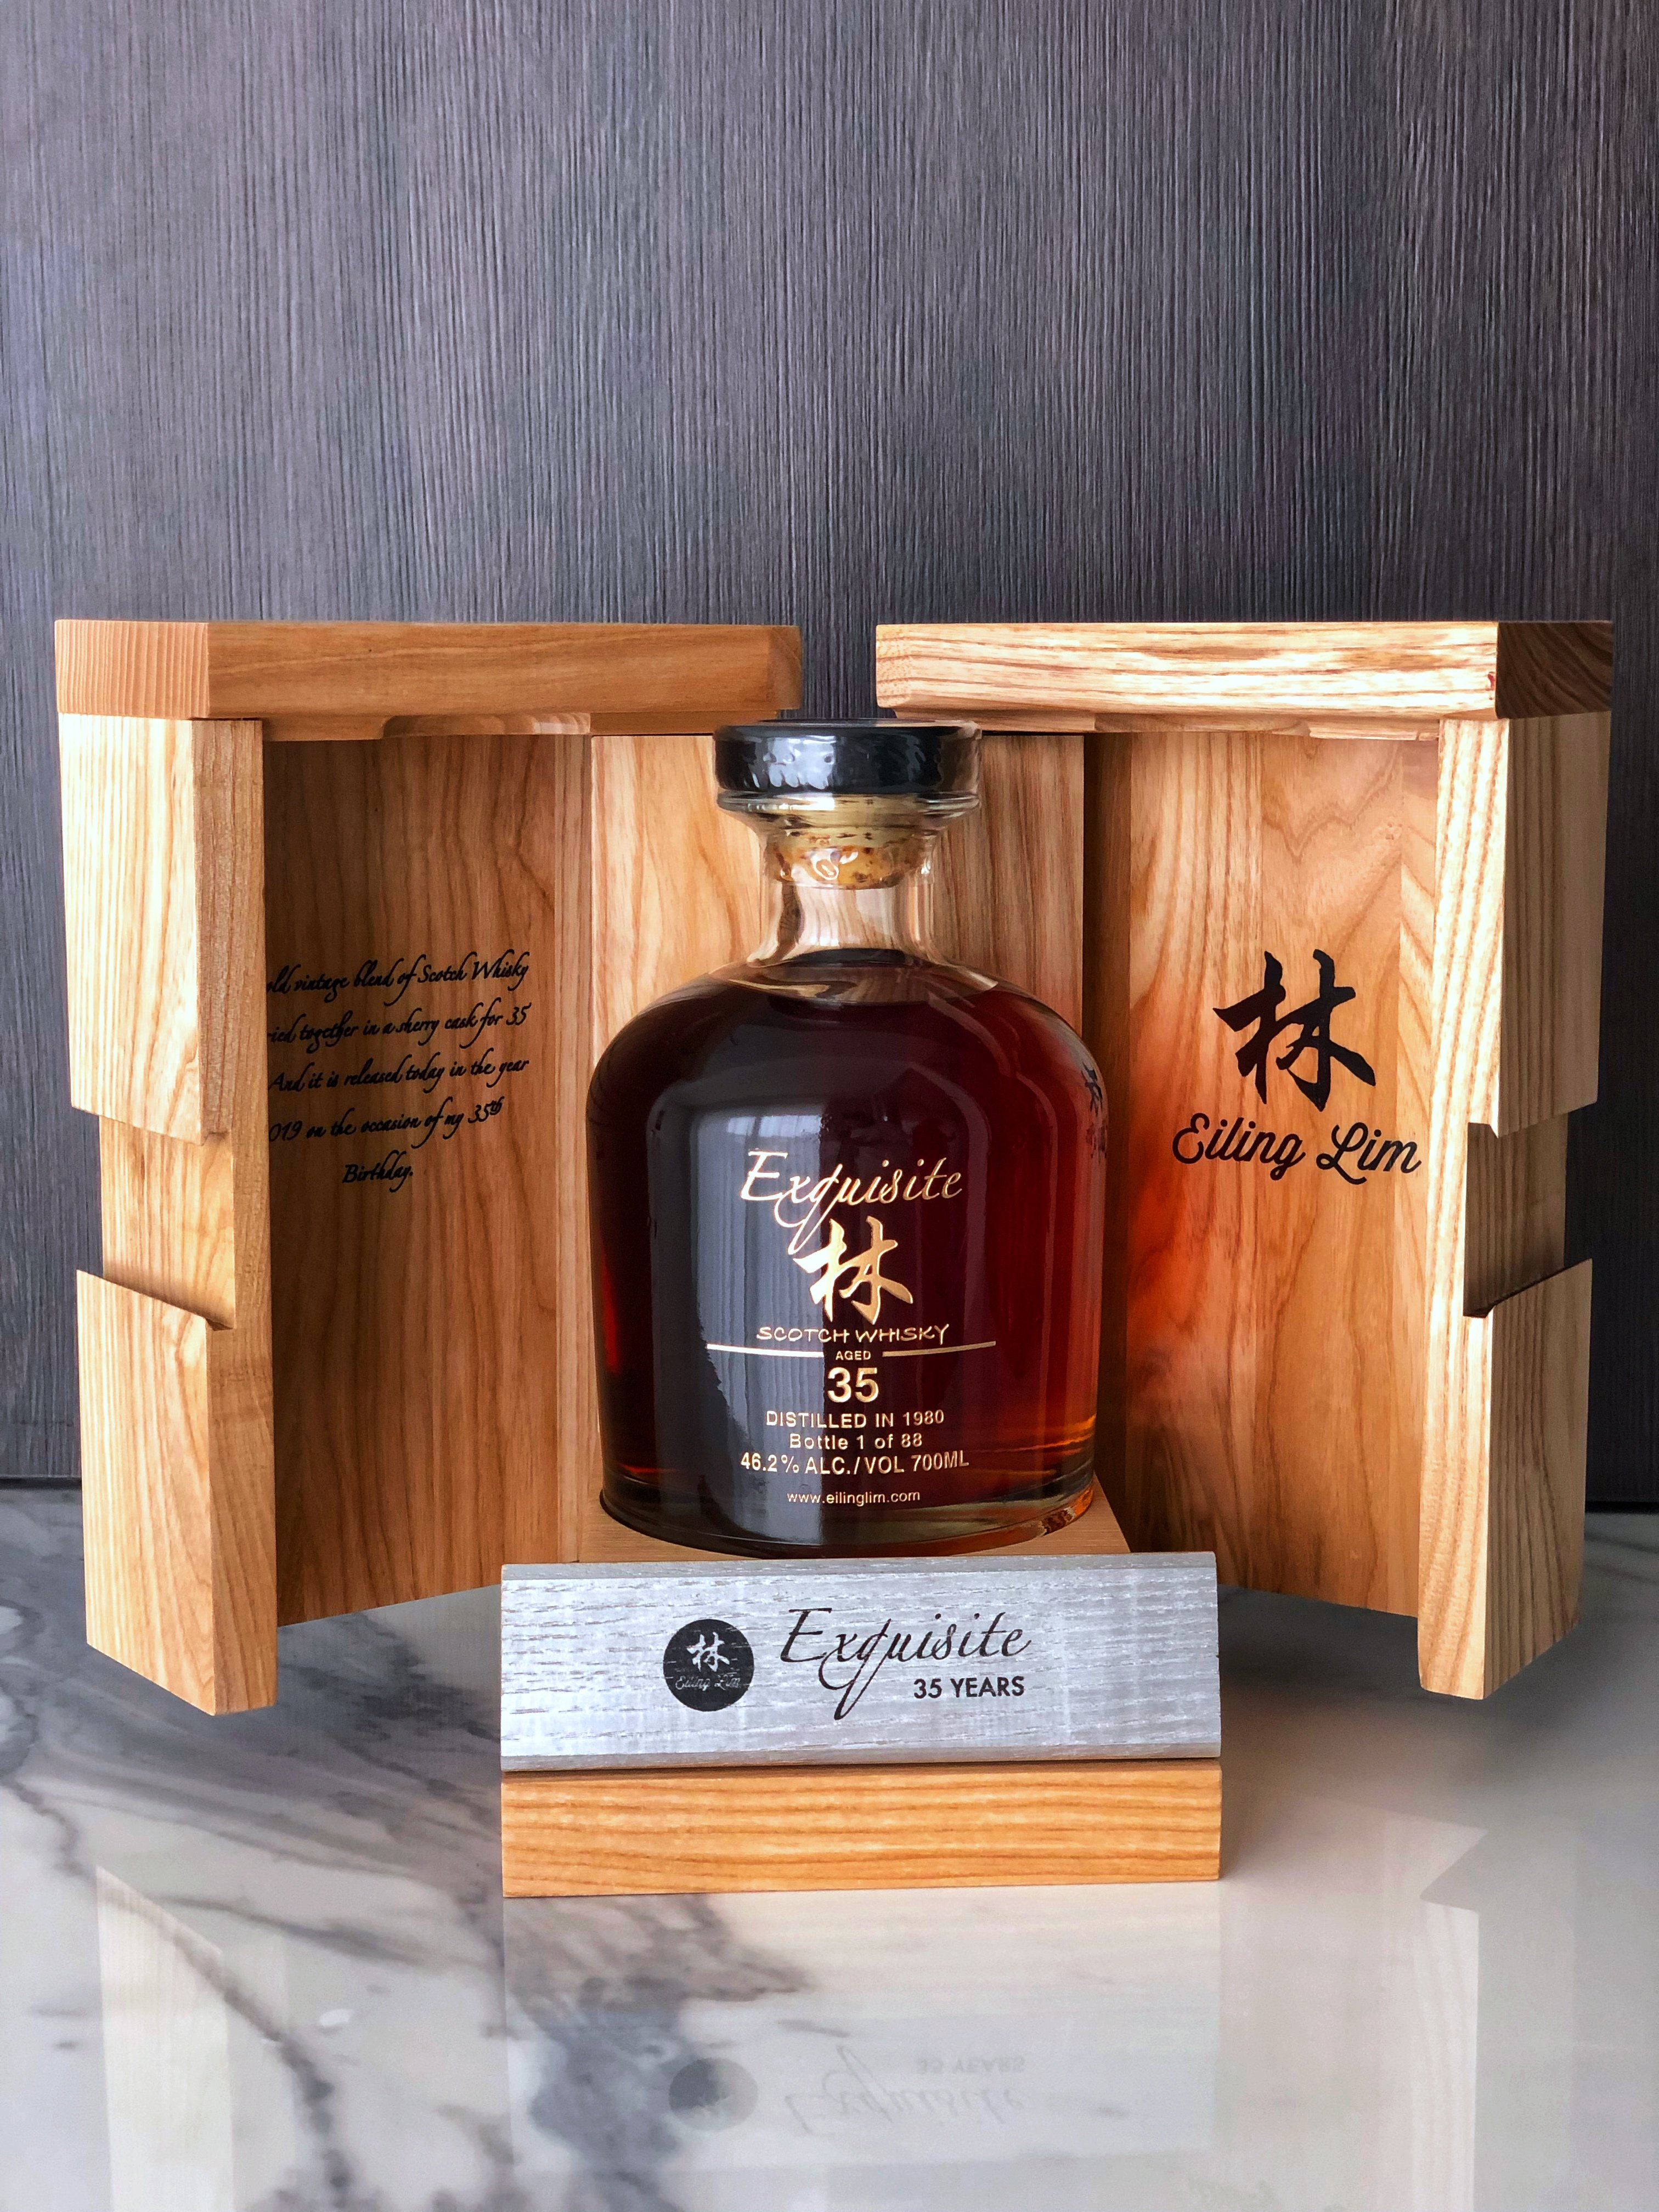 Exquisite 35yo, 46,2%, Scotch Whisky , 88 bottles